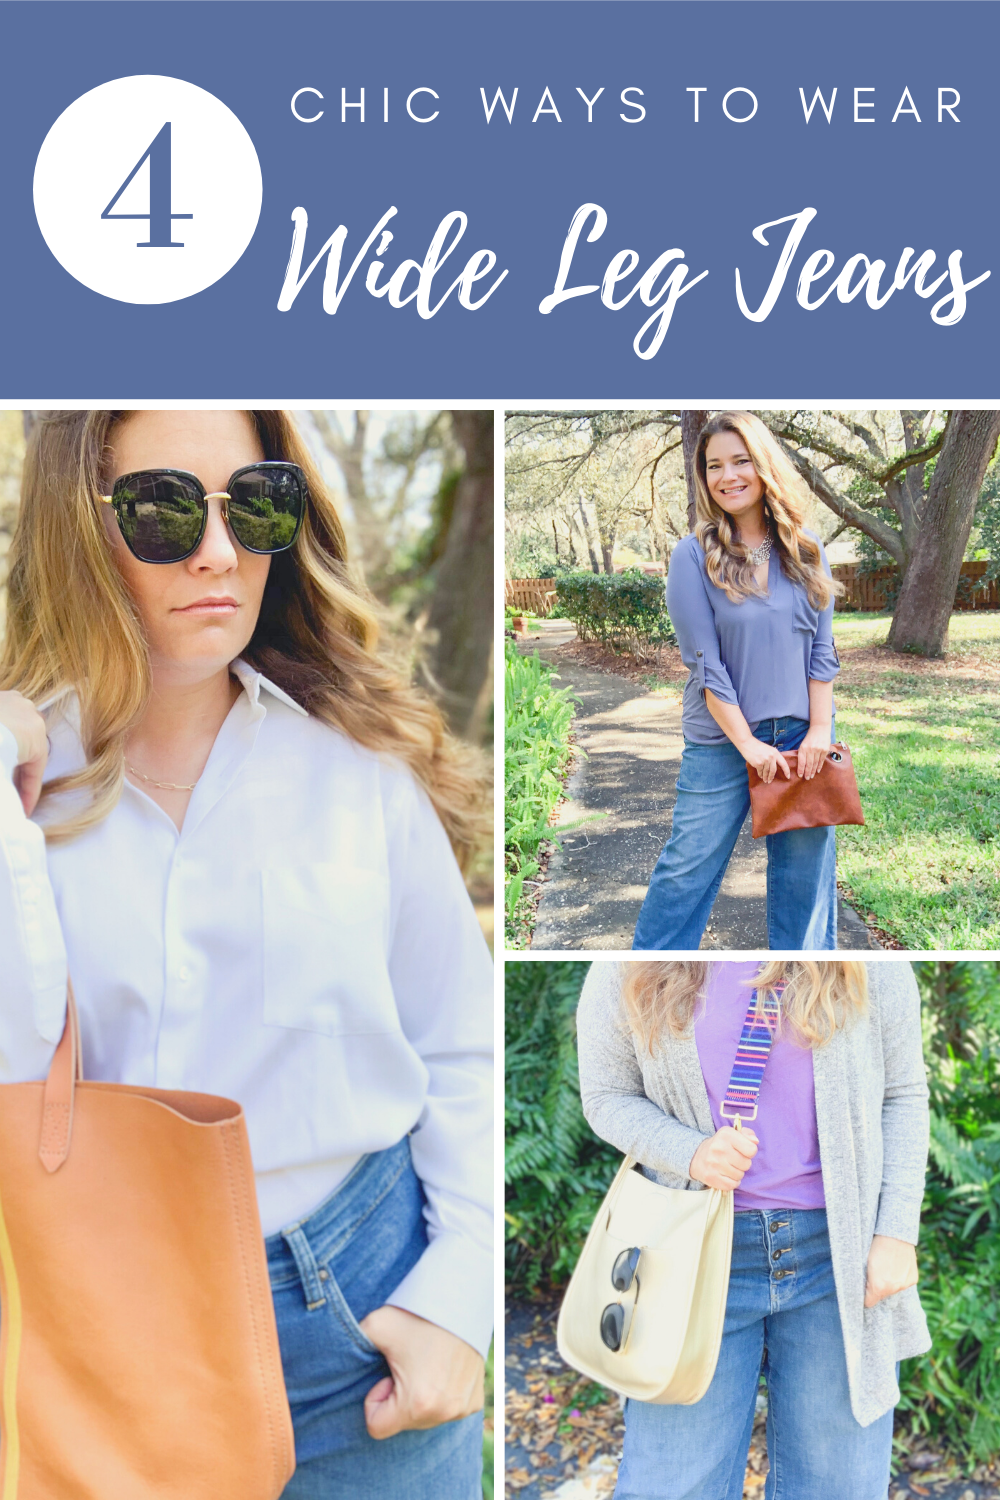 Four chic and effortless ways to wear wide leg jeans. See how to style wide leg jeans into outfits that are on trend and mom wardrobe approved. Midsize fashion for women.